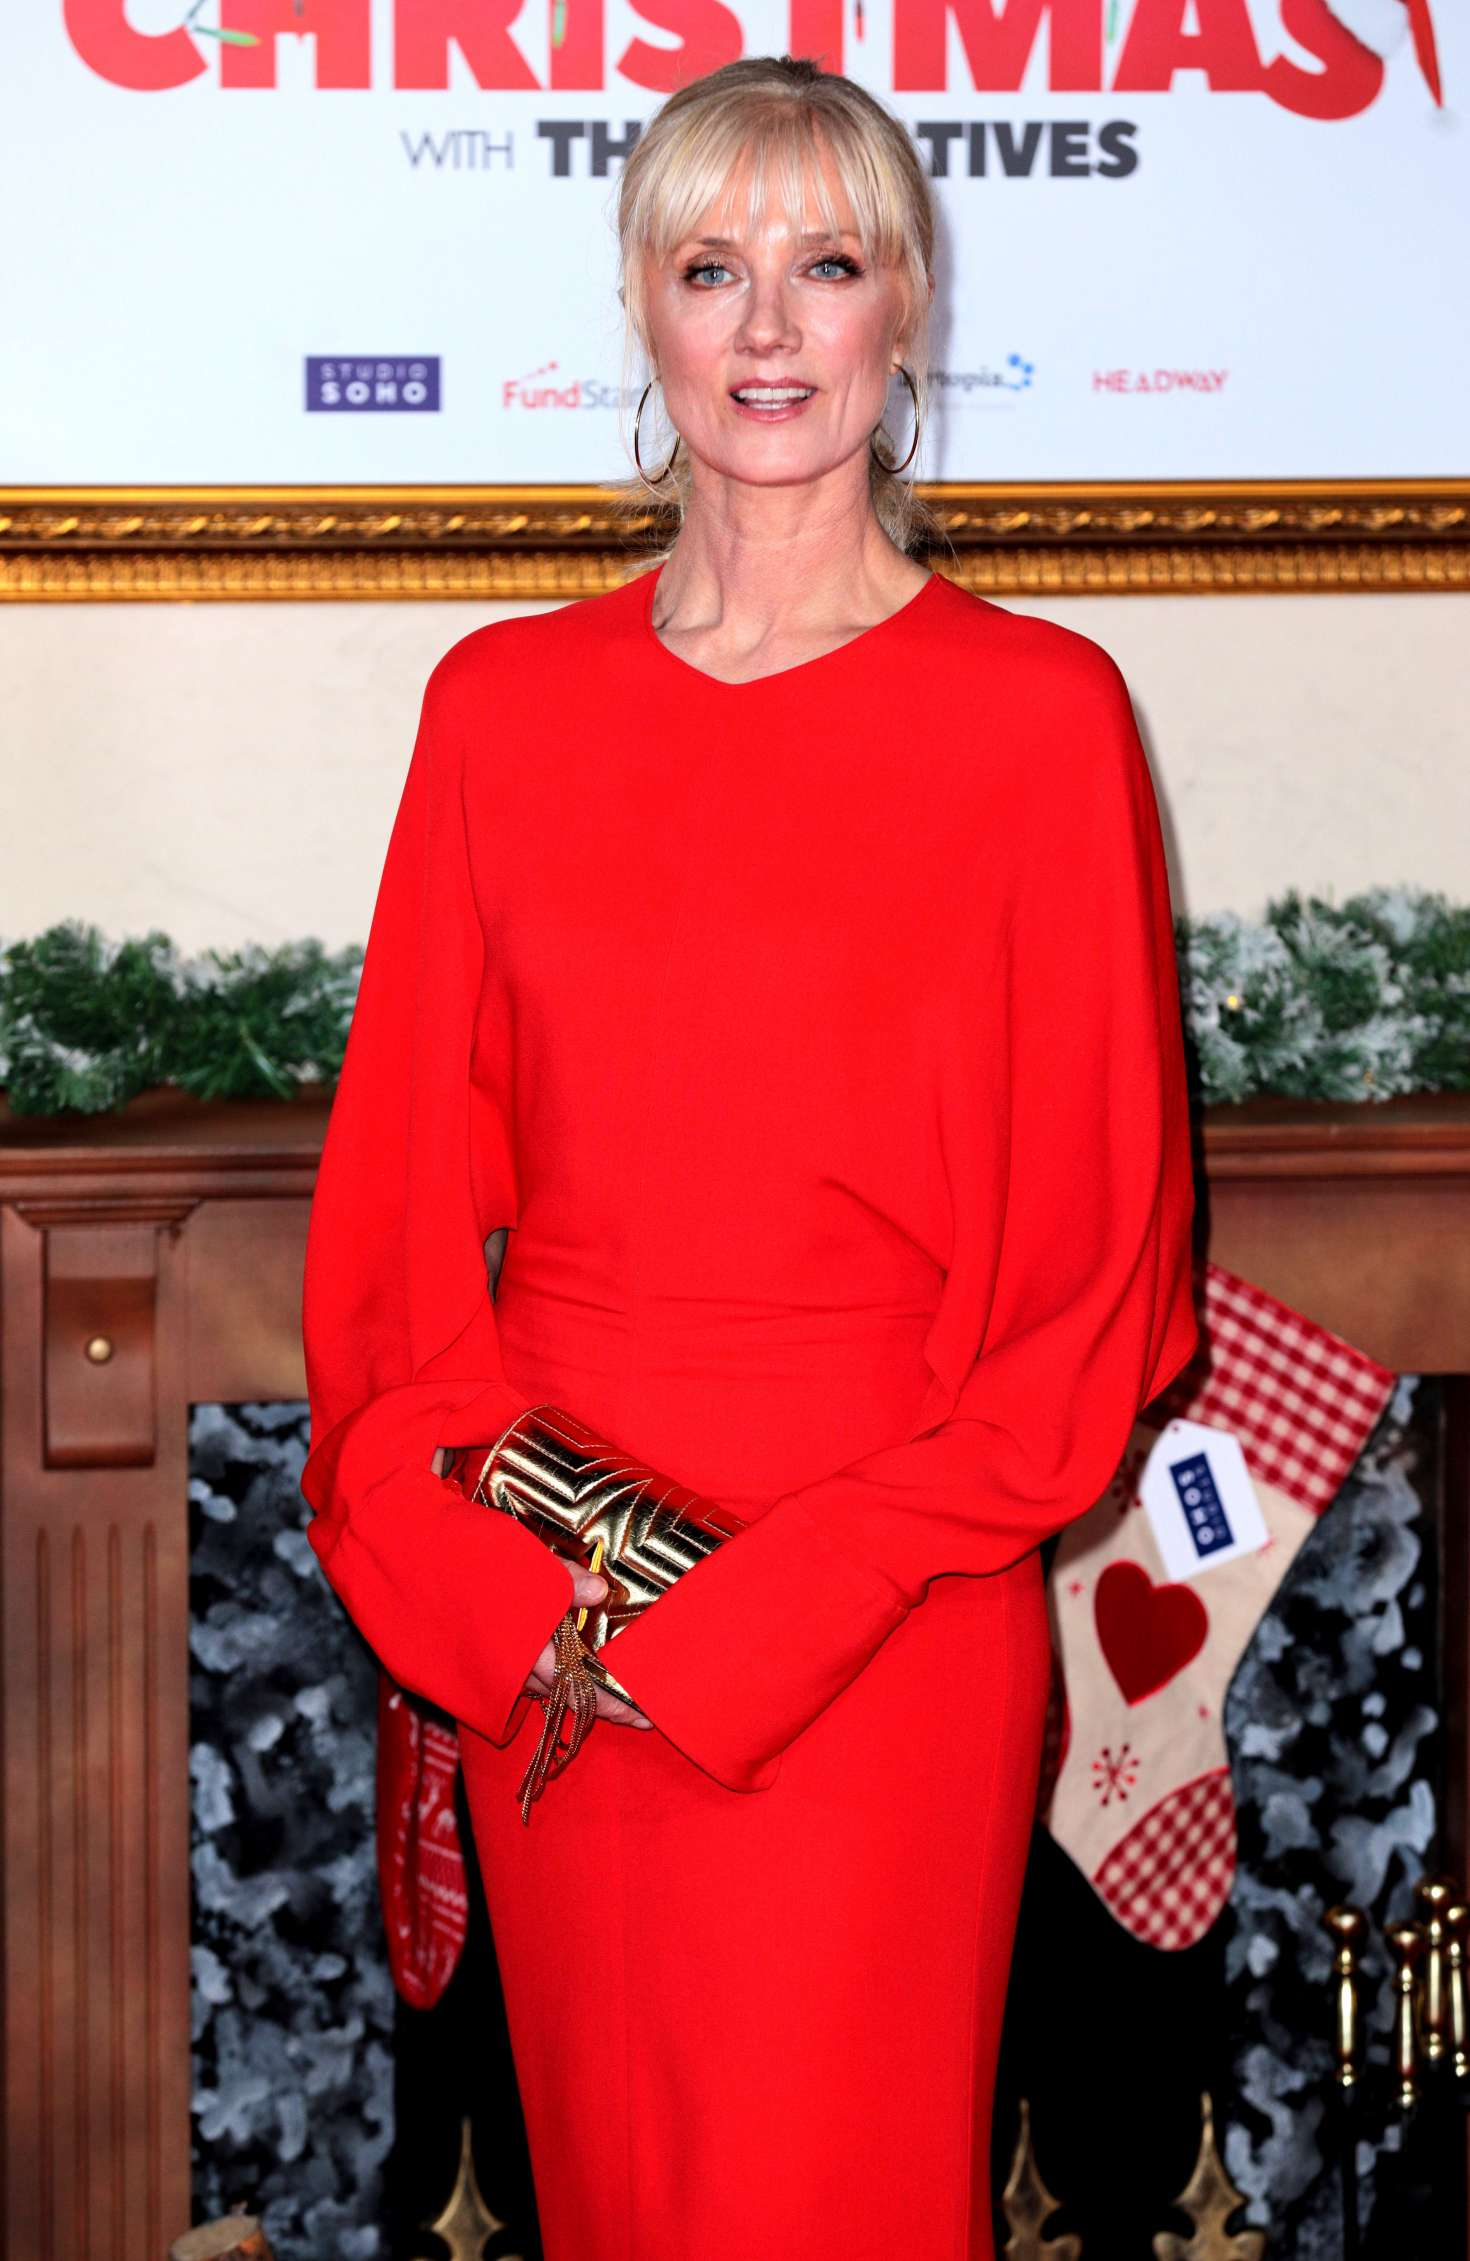 Joely Richardson - 'Surviving Christmas with the Relatives' Premiere in London